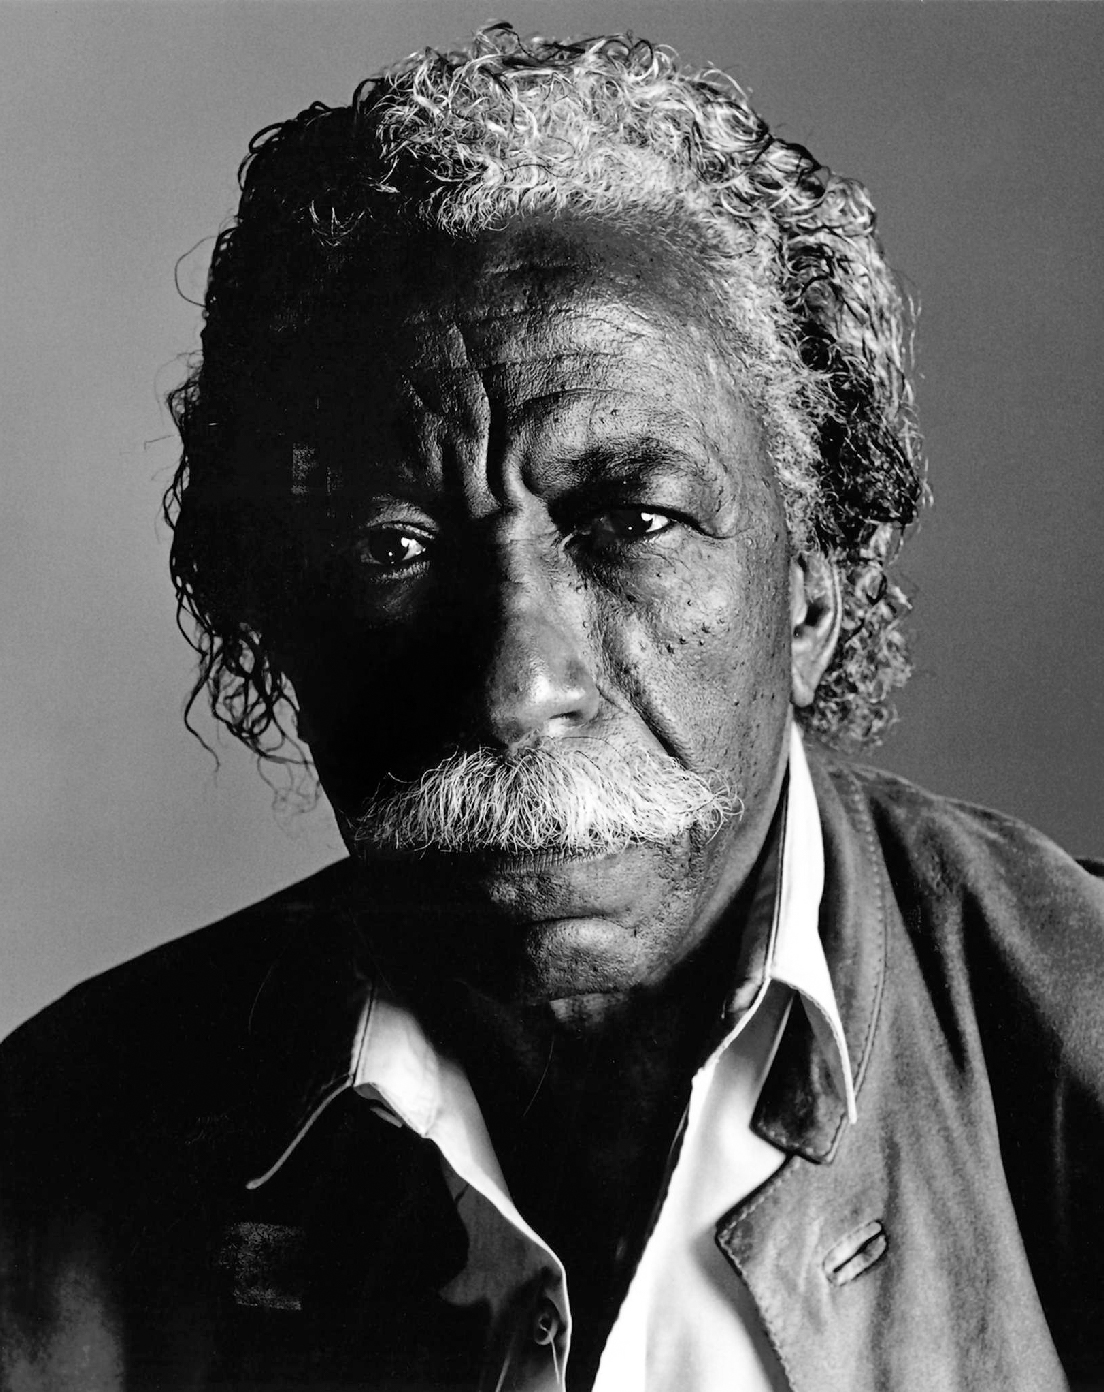 Portrait of Gordon Parks